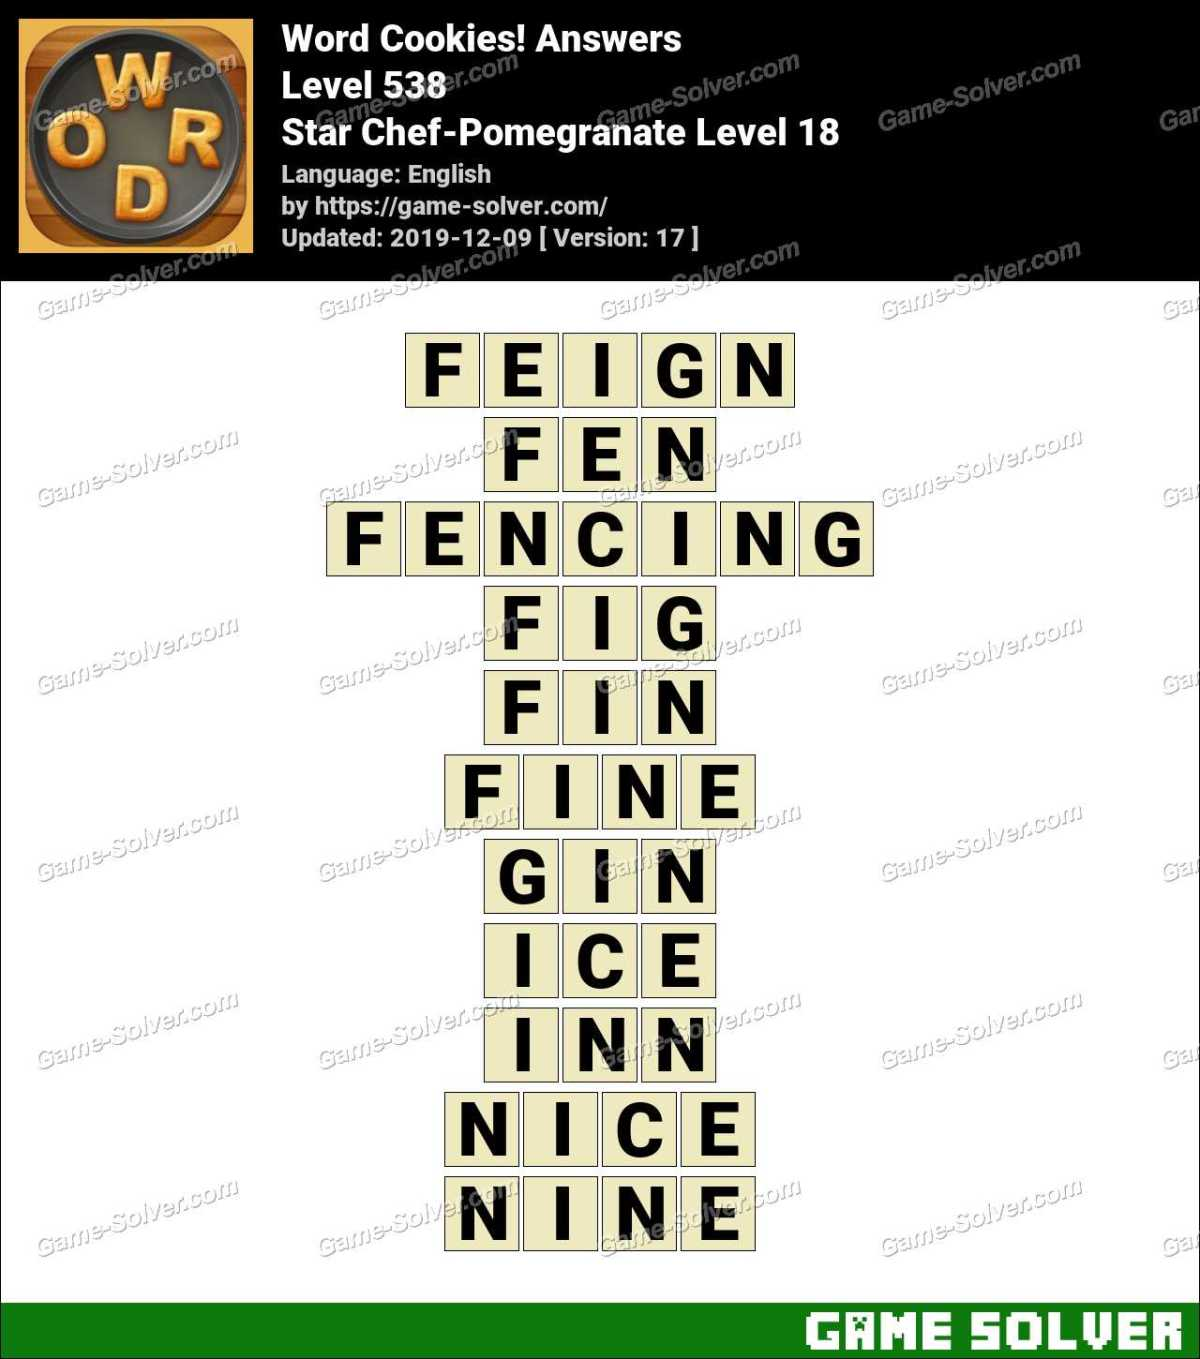 Word Cookies Star Chef-Pomegranate Level 18 Answers